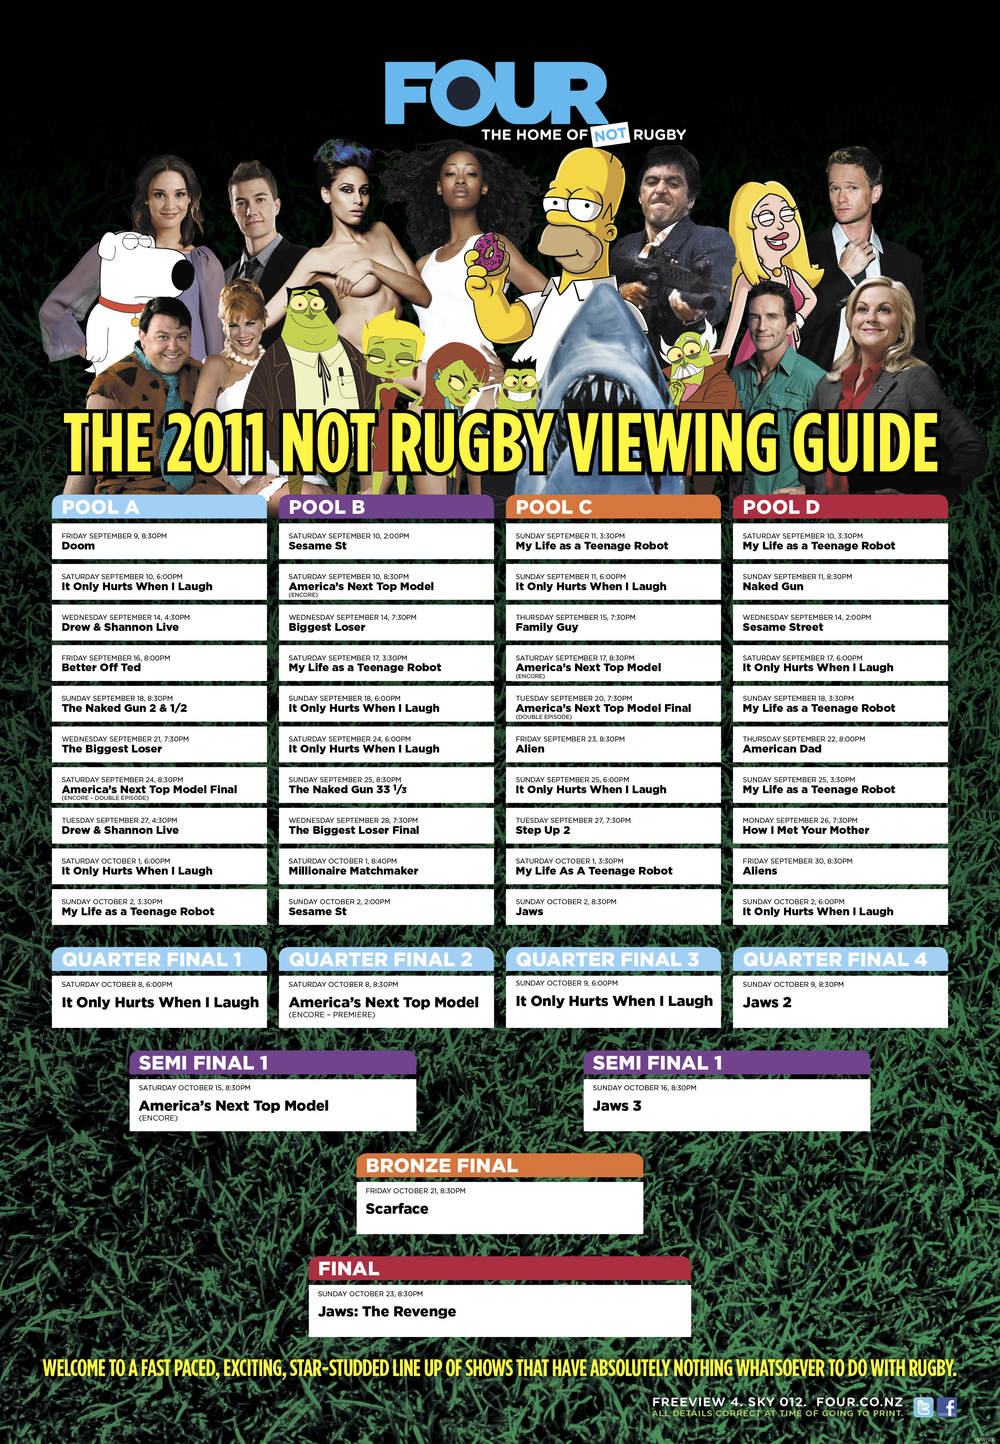 This newspaper pull-out showed exactly what you could watch on Channel FOUR during every single match of the rugby world cup.